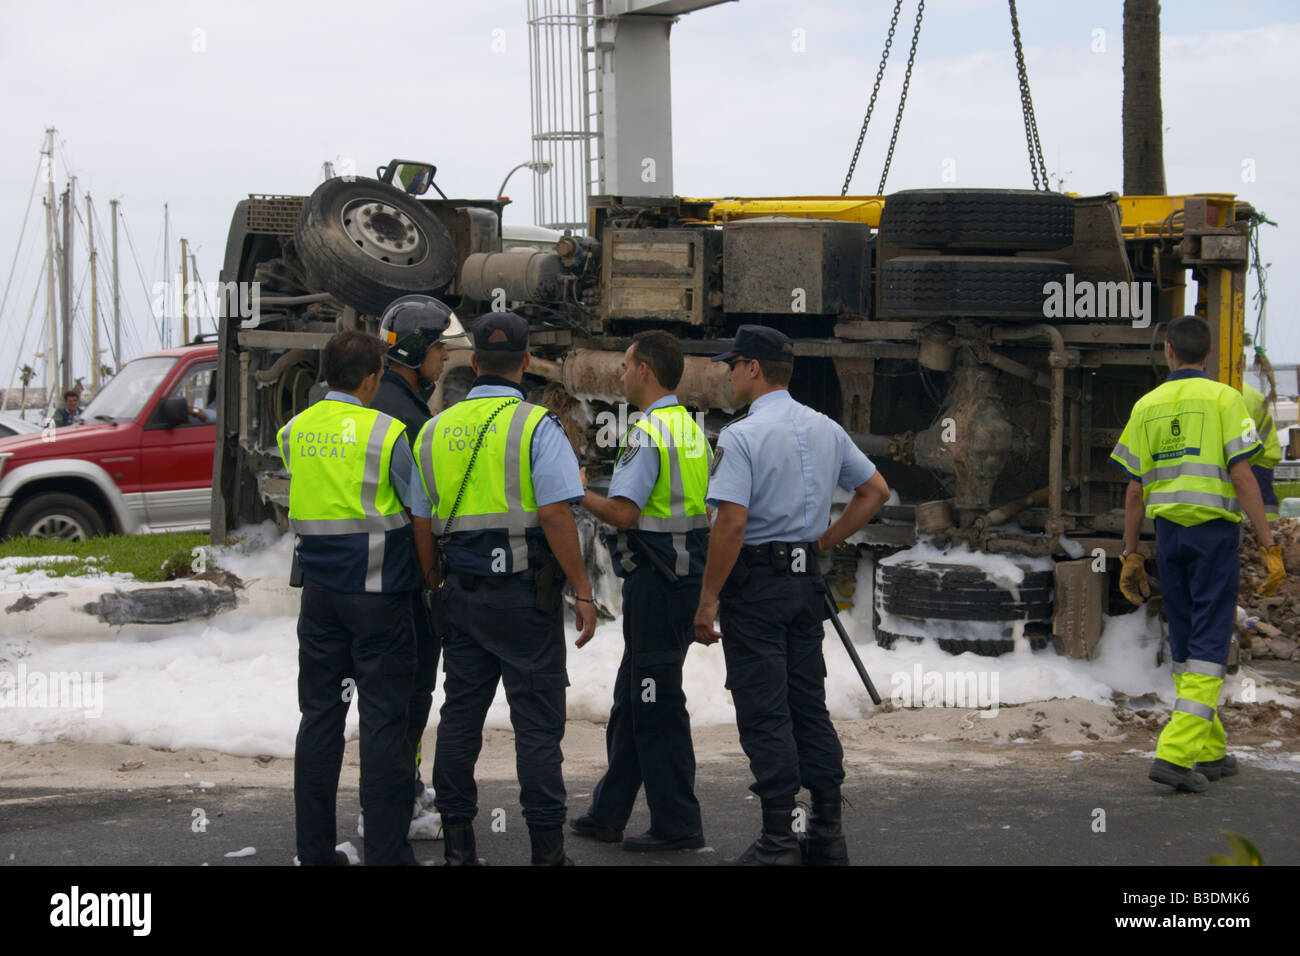 Police and fireman at scene of road traffic accident on Gran Canaria with foam and sand on road. Stock Photo